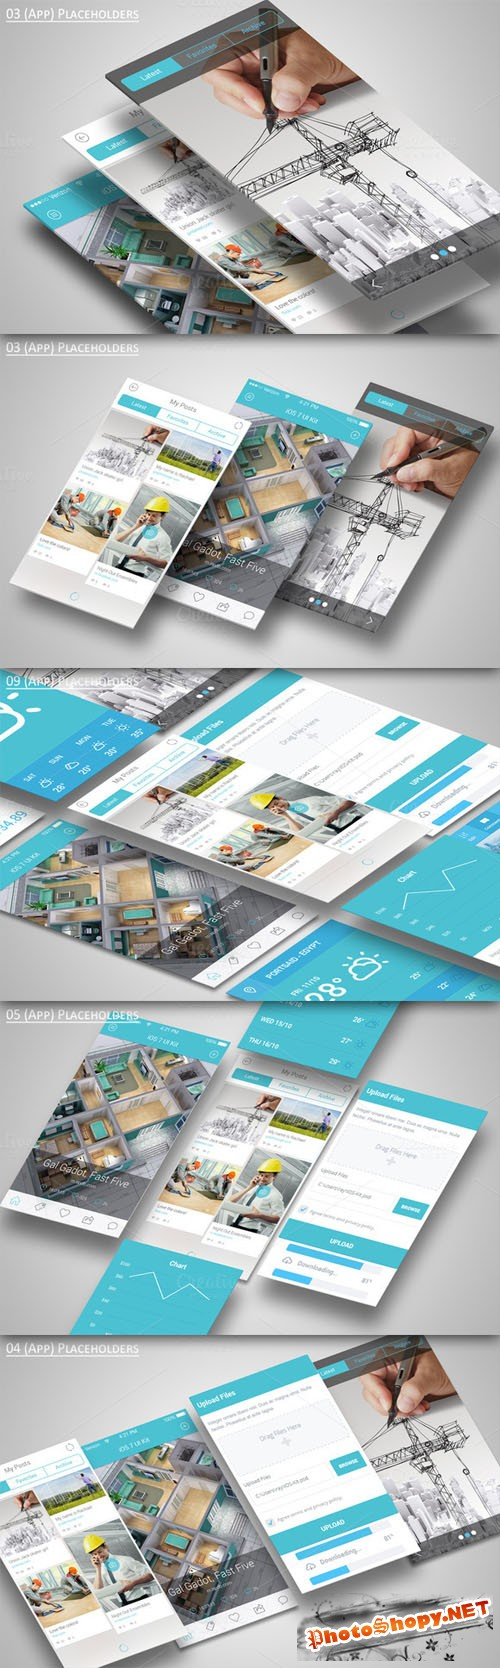 CreativeMarket - Mobile Application Showcase Mockup